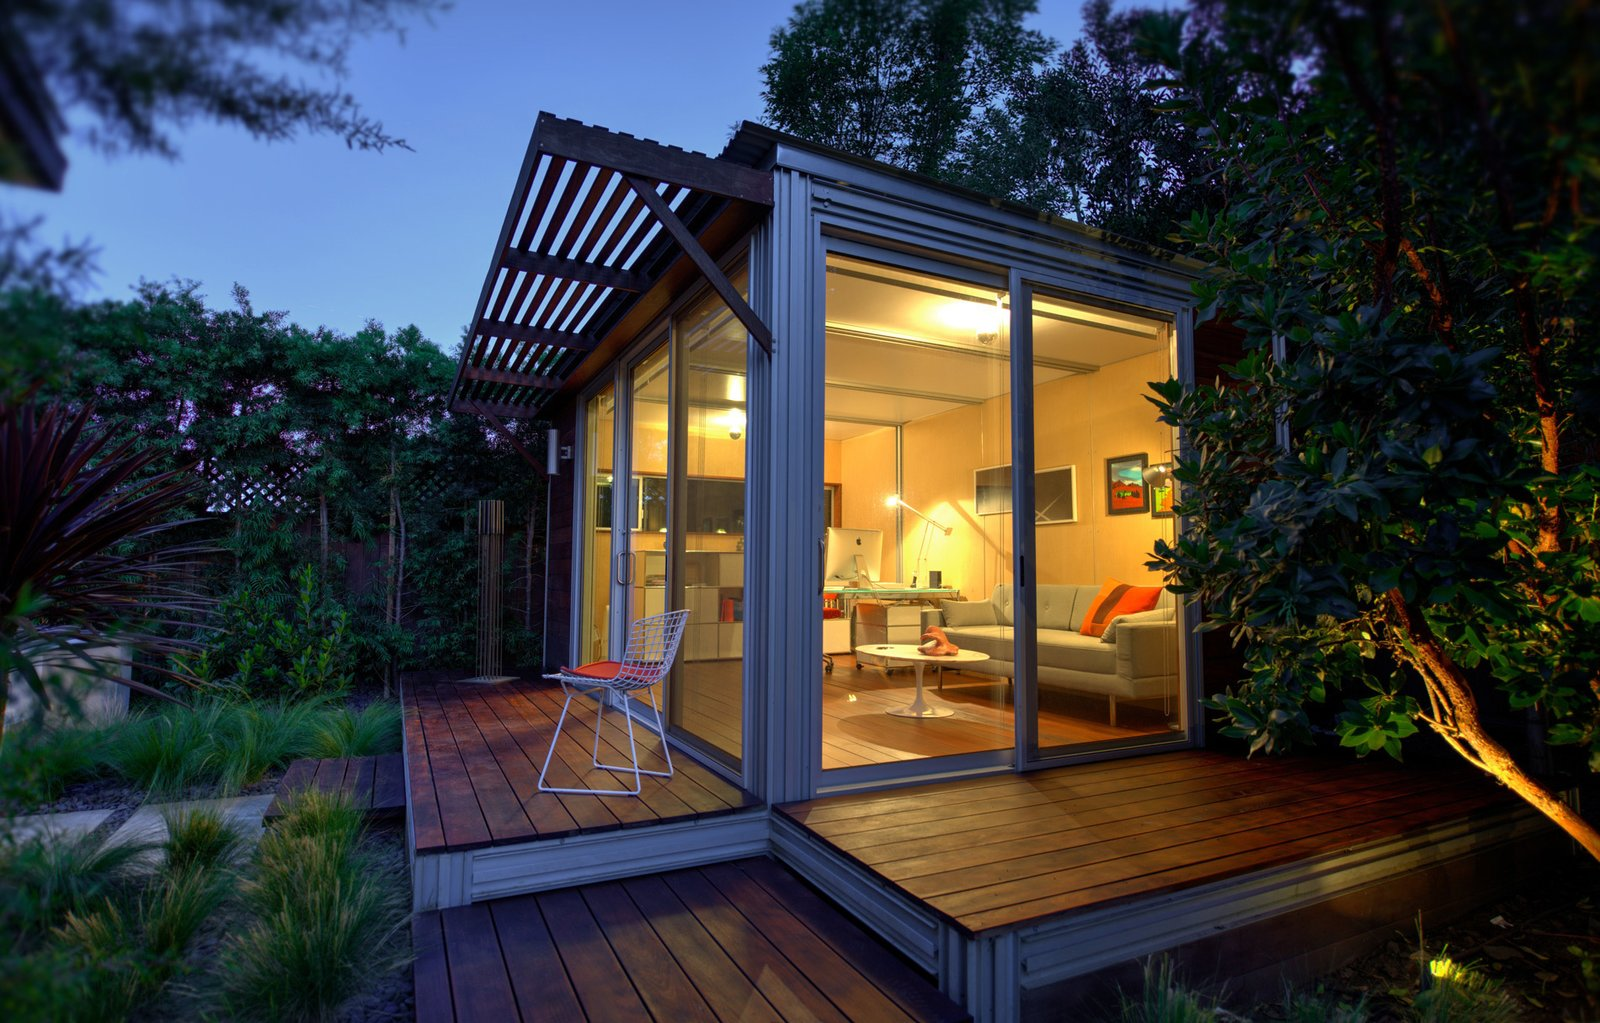 This Beverly Hills kitHAUS delivers modernist pre-fab modules that transform open spaces into anything-you-want hubs—yoga studios, home offices, weekend retreats, pop-up kiosks, guest rooms,  Photo 7 of 11 in 10 Kit Home Companies to Watch